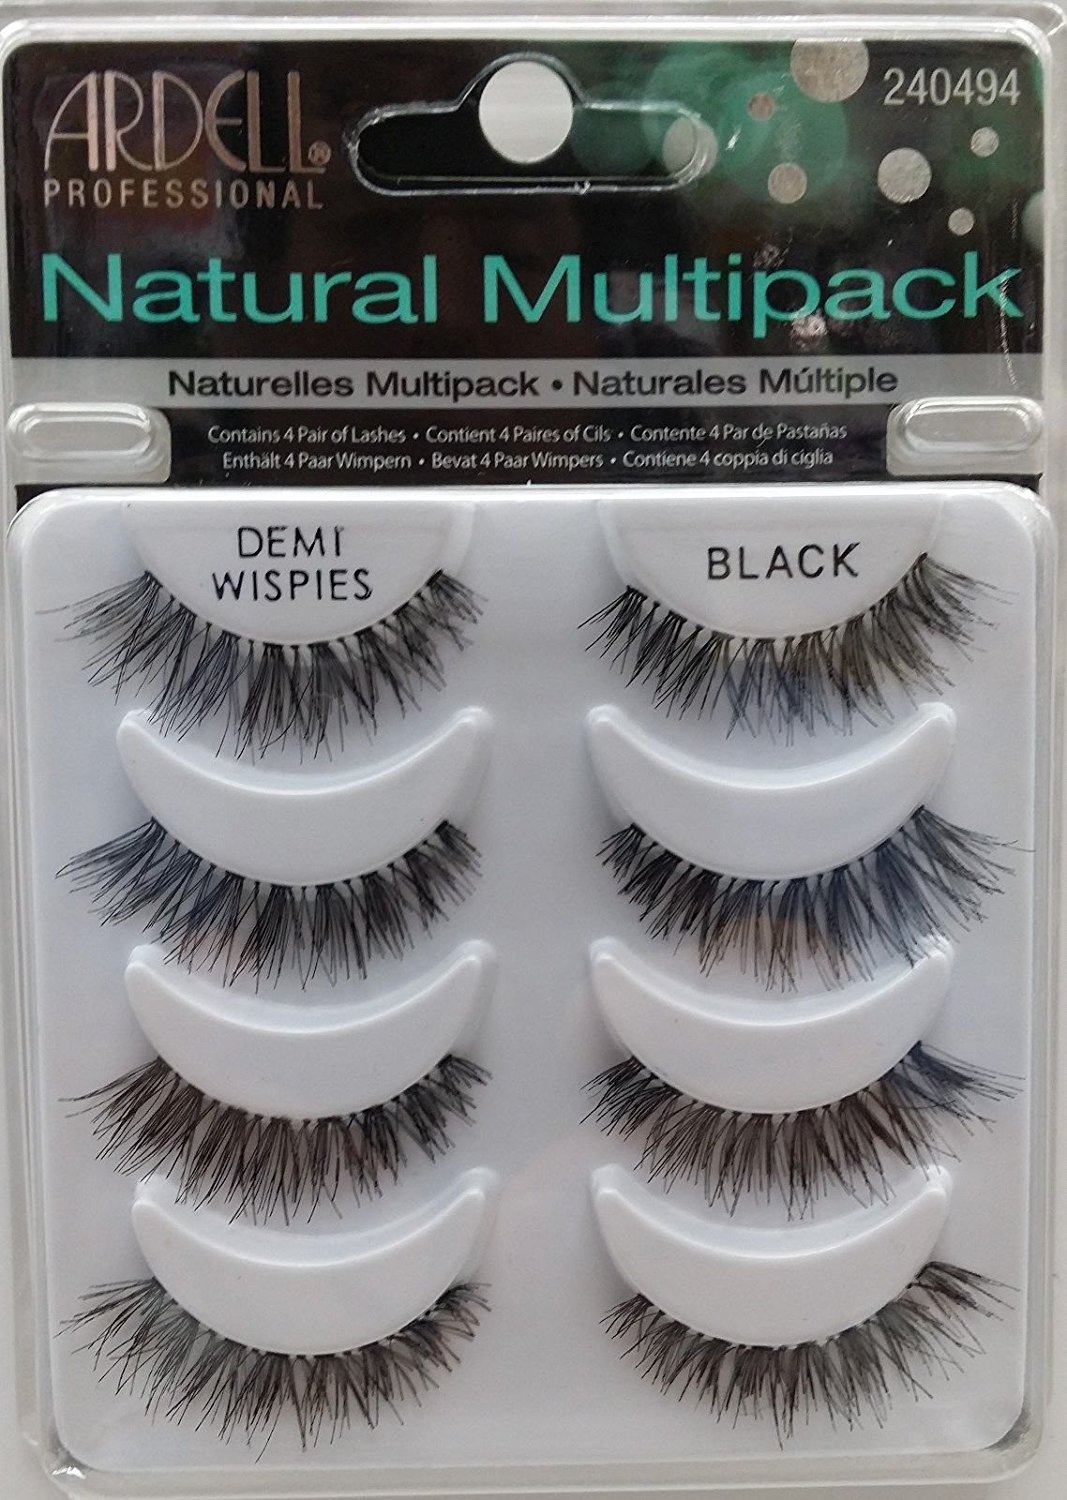 e0bac66f6a8 Get Quotations · Ardell Demi Wispies Natural Multi Pack (4 Pairs) False  Eyelashes Fake Lashes